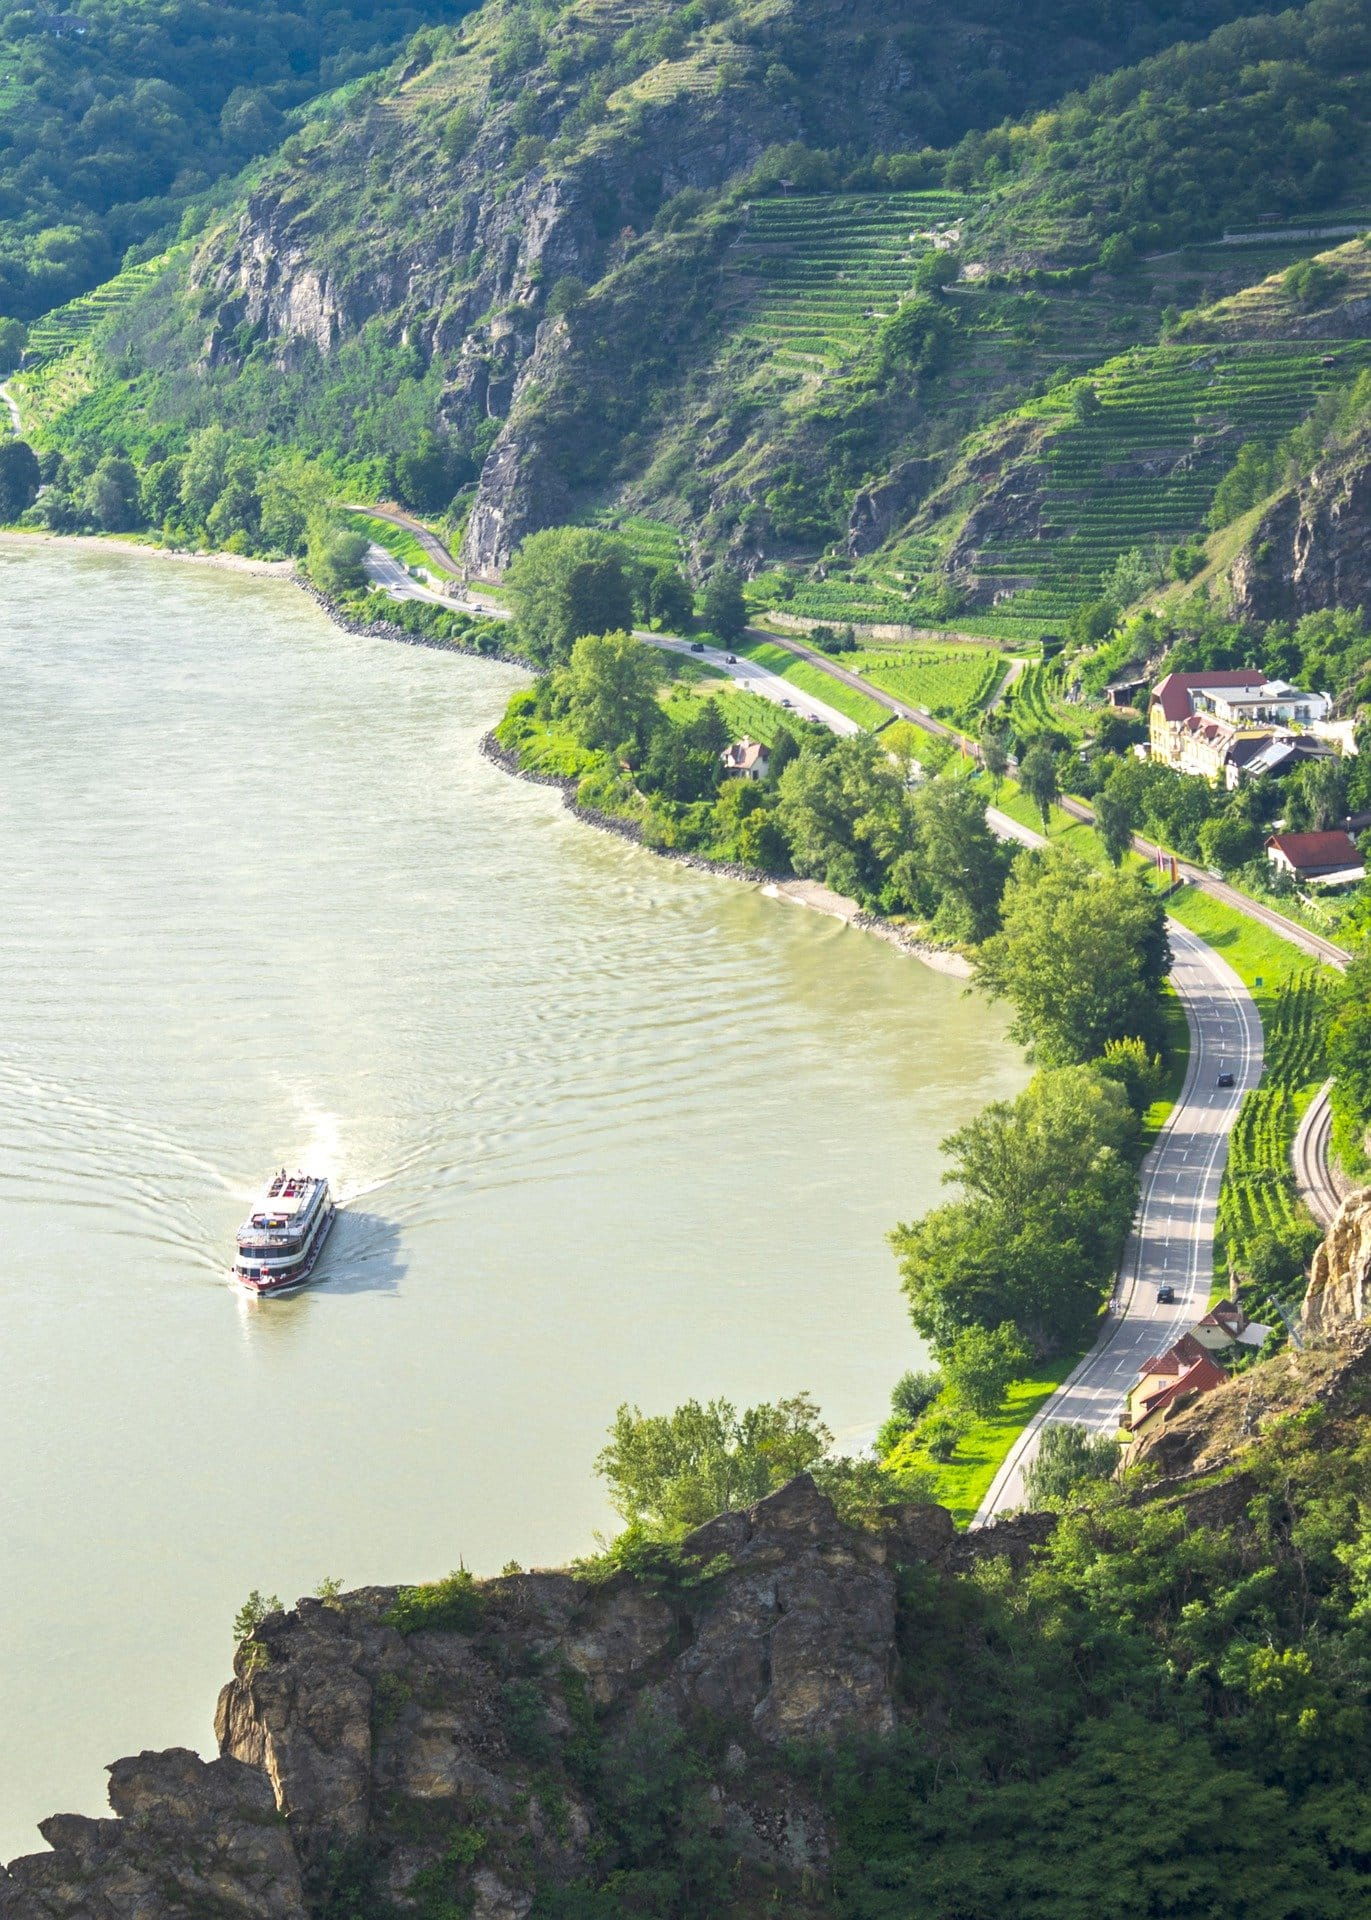 Do you wonder whether river cruising is for you? Let's see what river cruising is really all about and why it is a fantastic way to travel.